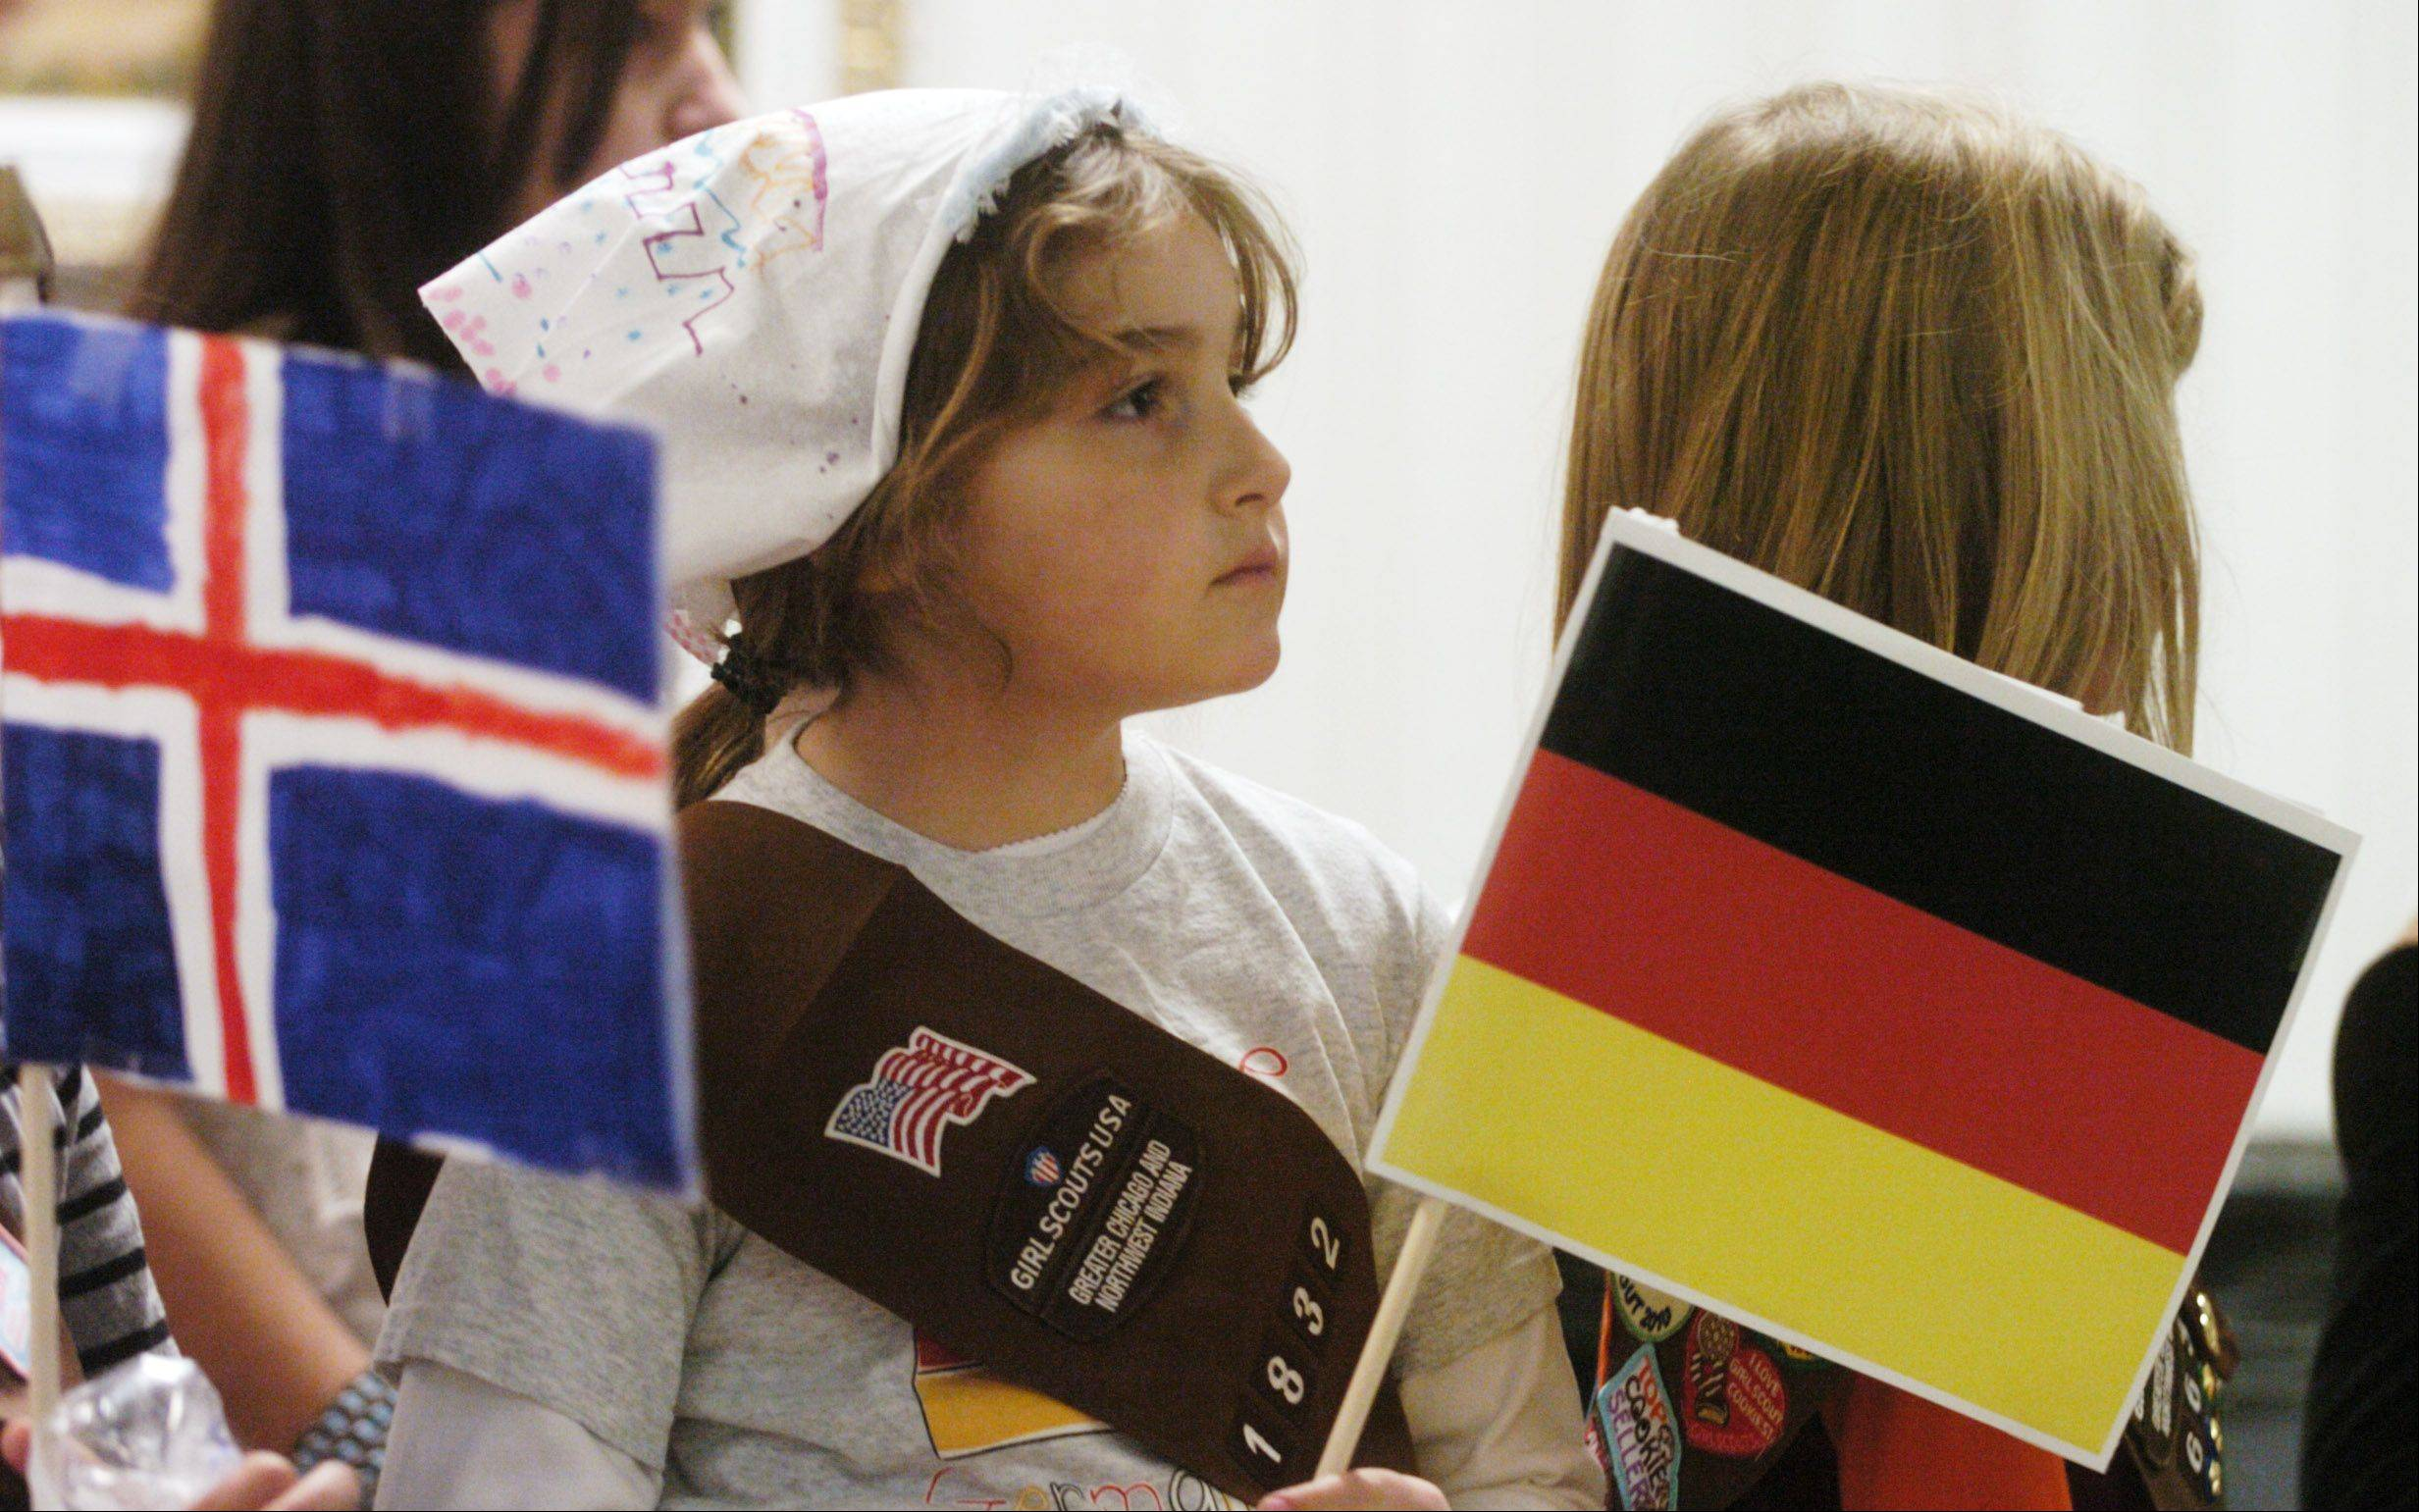 Alexandra Krieger, 7, of Troop 1832, holds the German flag during Girl Scouts World Thinking Day held earlier this month at the Society of the Danube Swabians in Des Plaines. The Girl Scouts mark their 100th anniversary today.